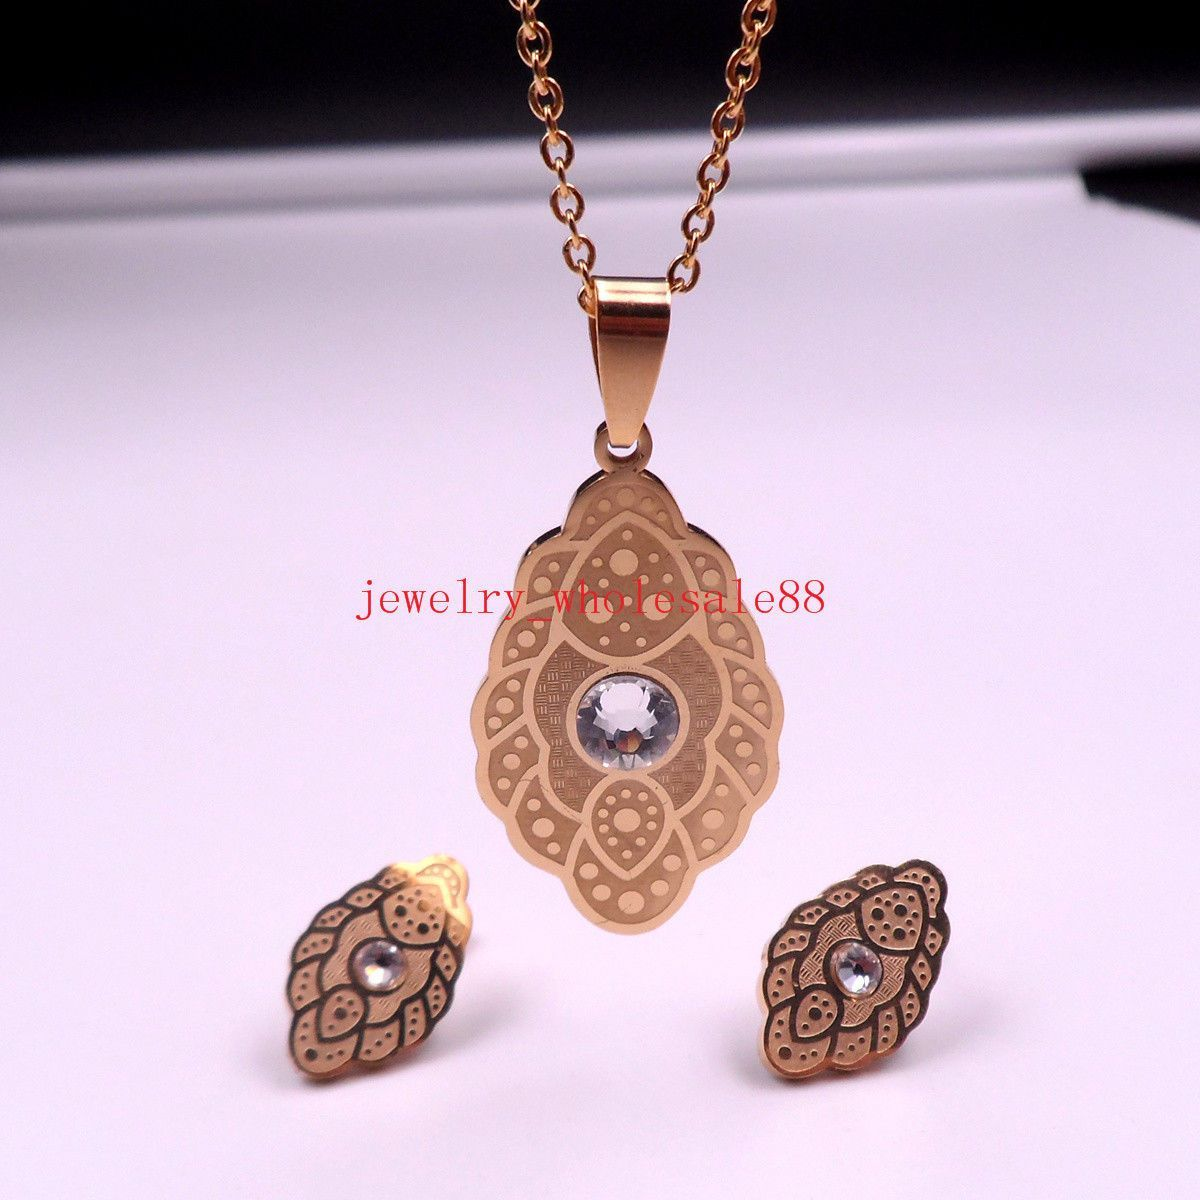 Women gold stainless steel cute design necklace pendant u earring